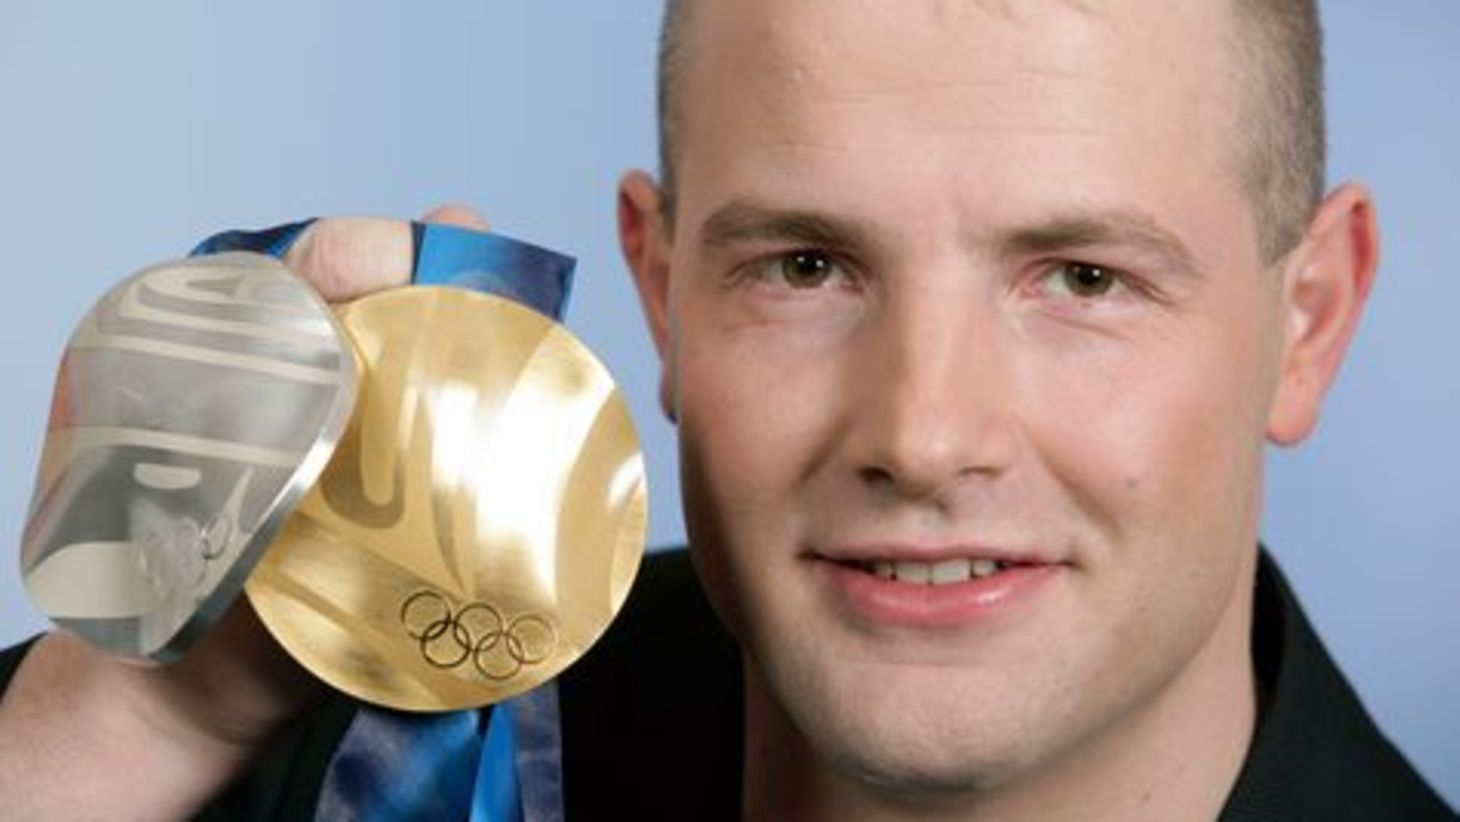 Andre Lange Bob-Olympiasieger 2010